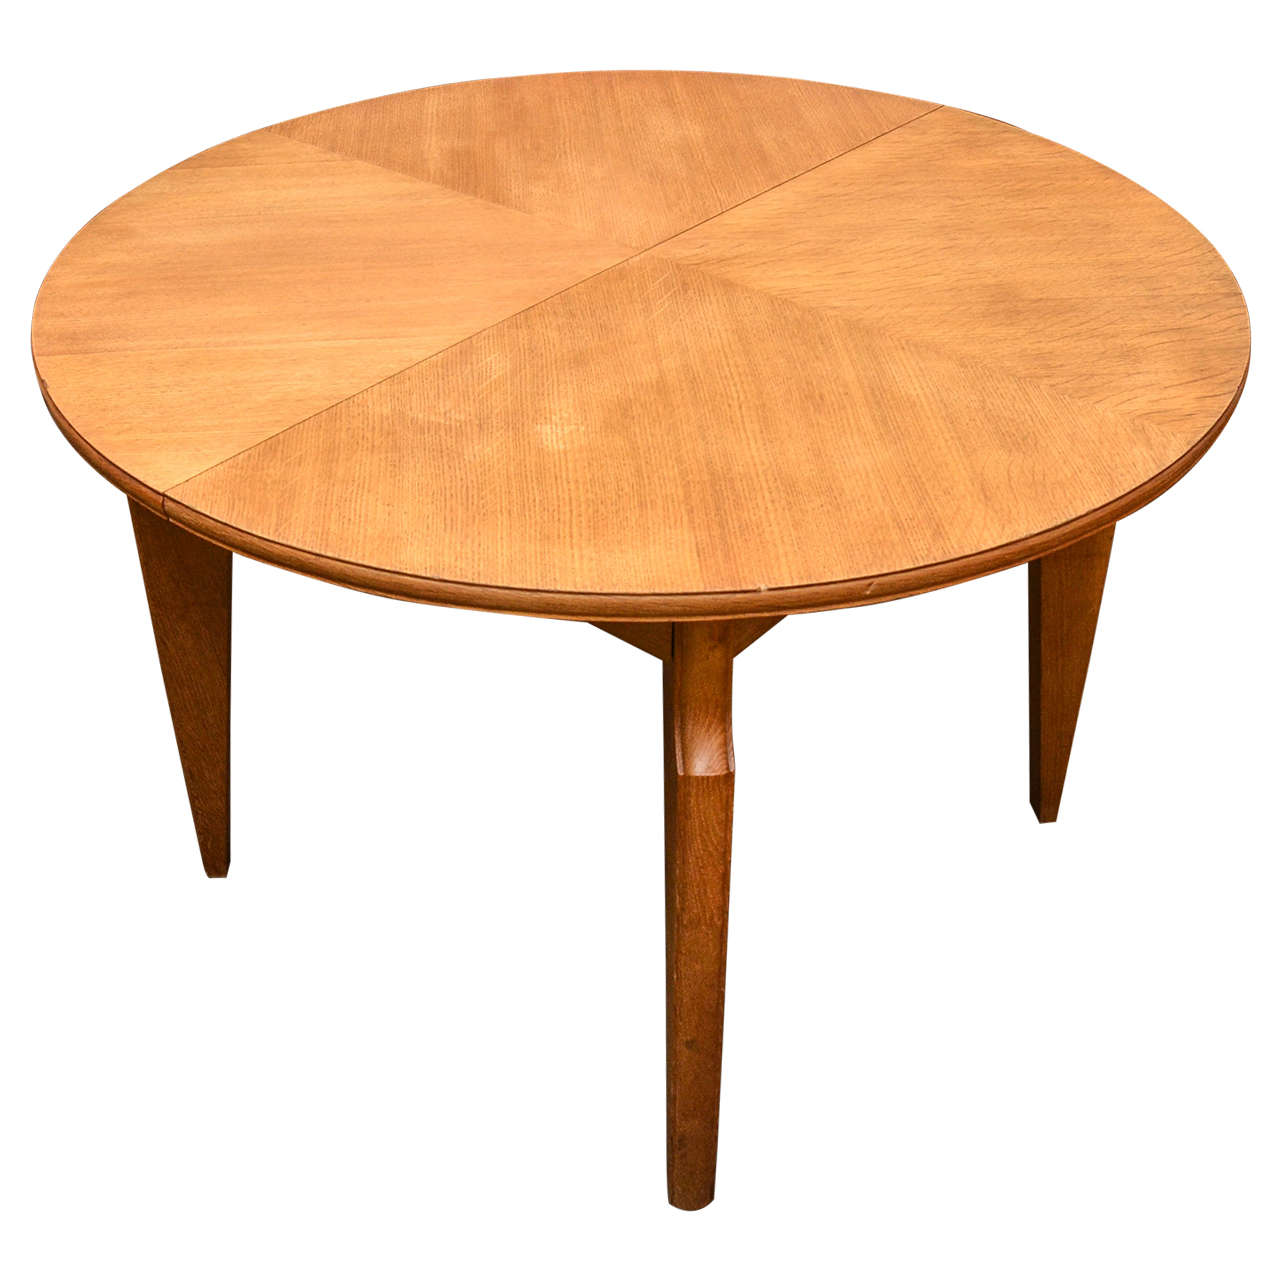 round oak extendable dining table for sale at 1stdibs. Black Bedroom Furniture Sets. Home Design Ideas